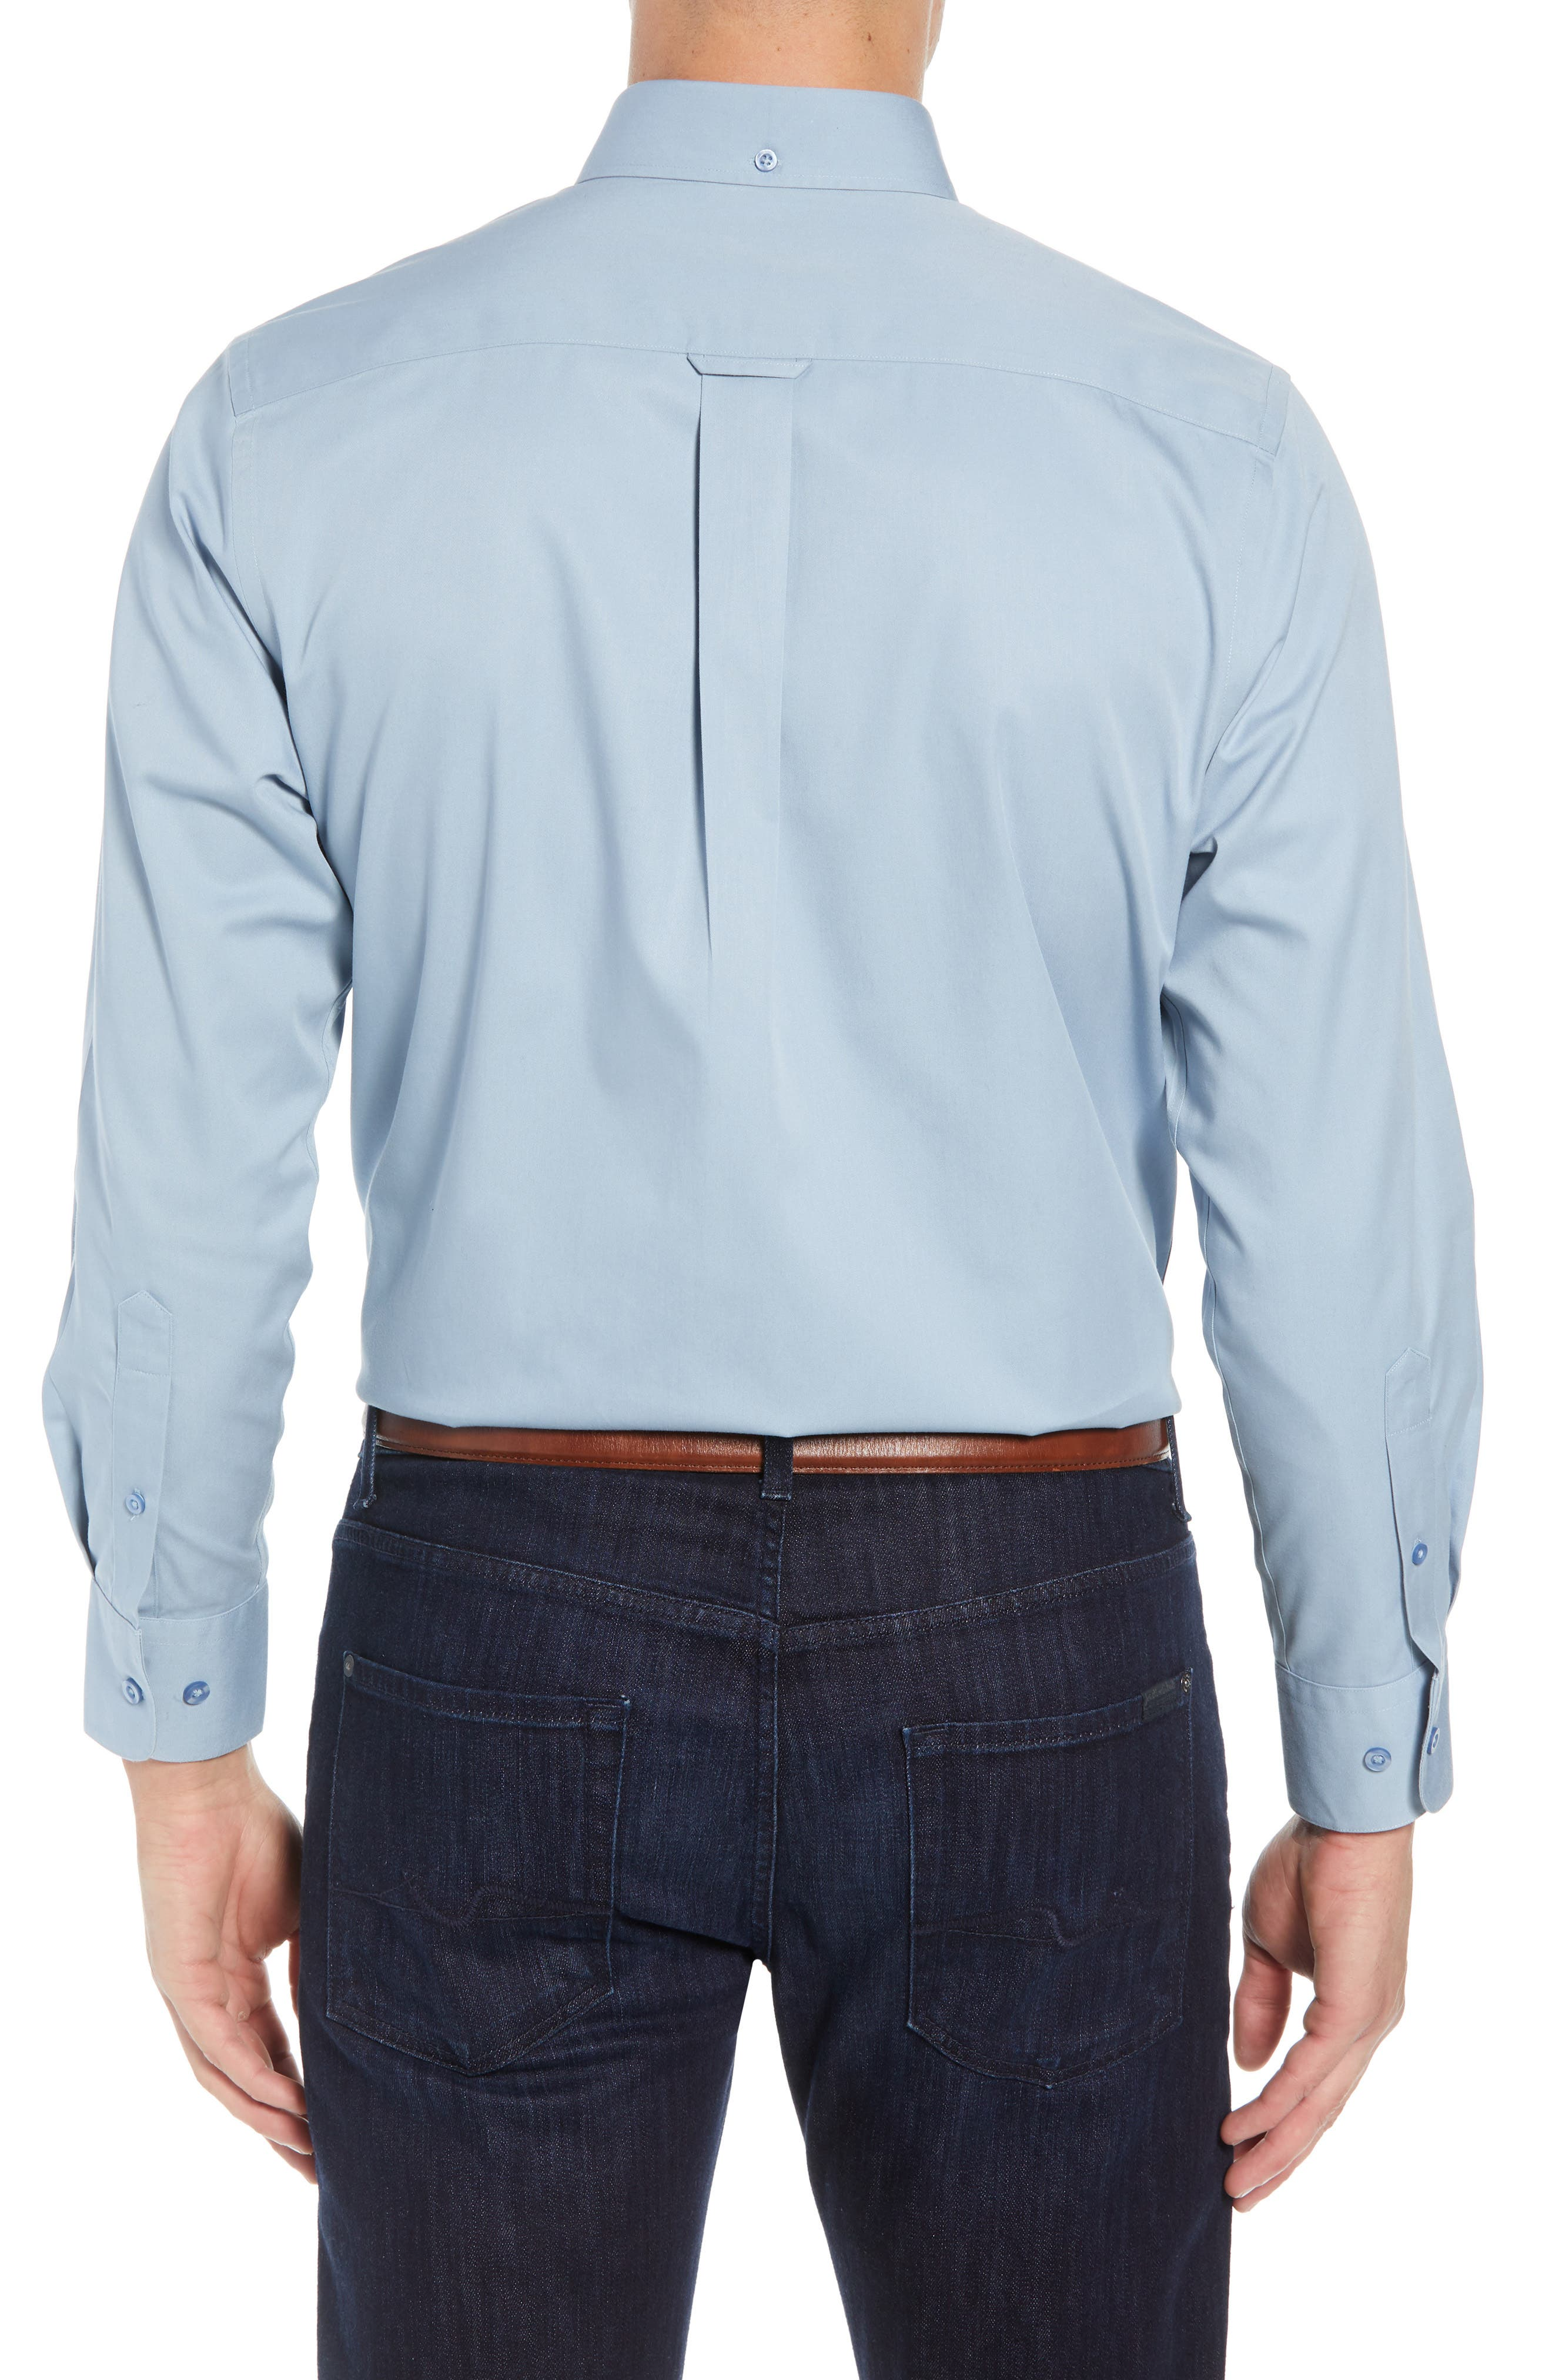 NORDSTROM MEN'S SHOP,                             Smartcare<sup>™</sup> Traditional Fit Twill Boat Shirt,                             Alternate thumbnail 2, color,                             BLUE DRIZZLE